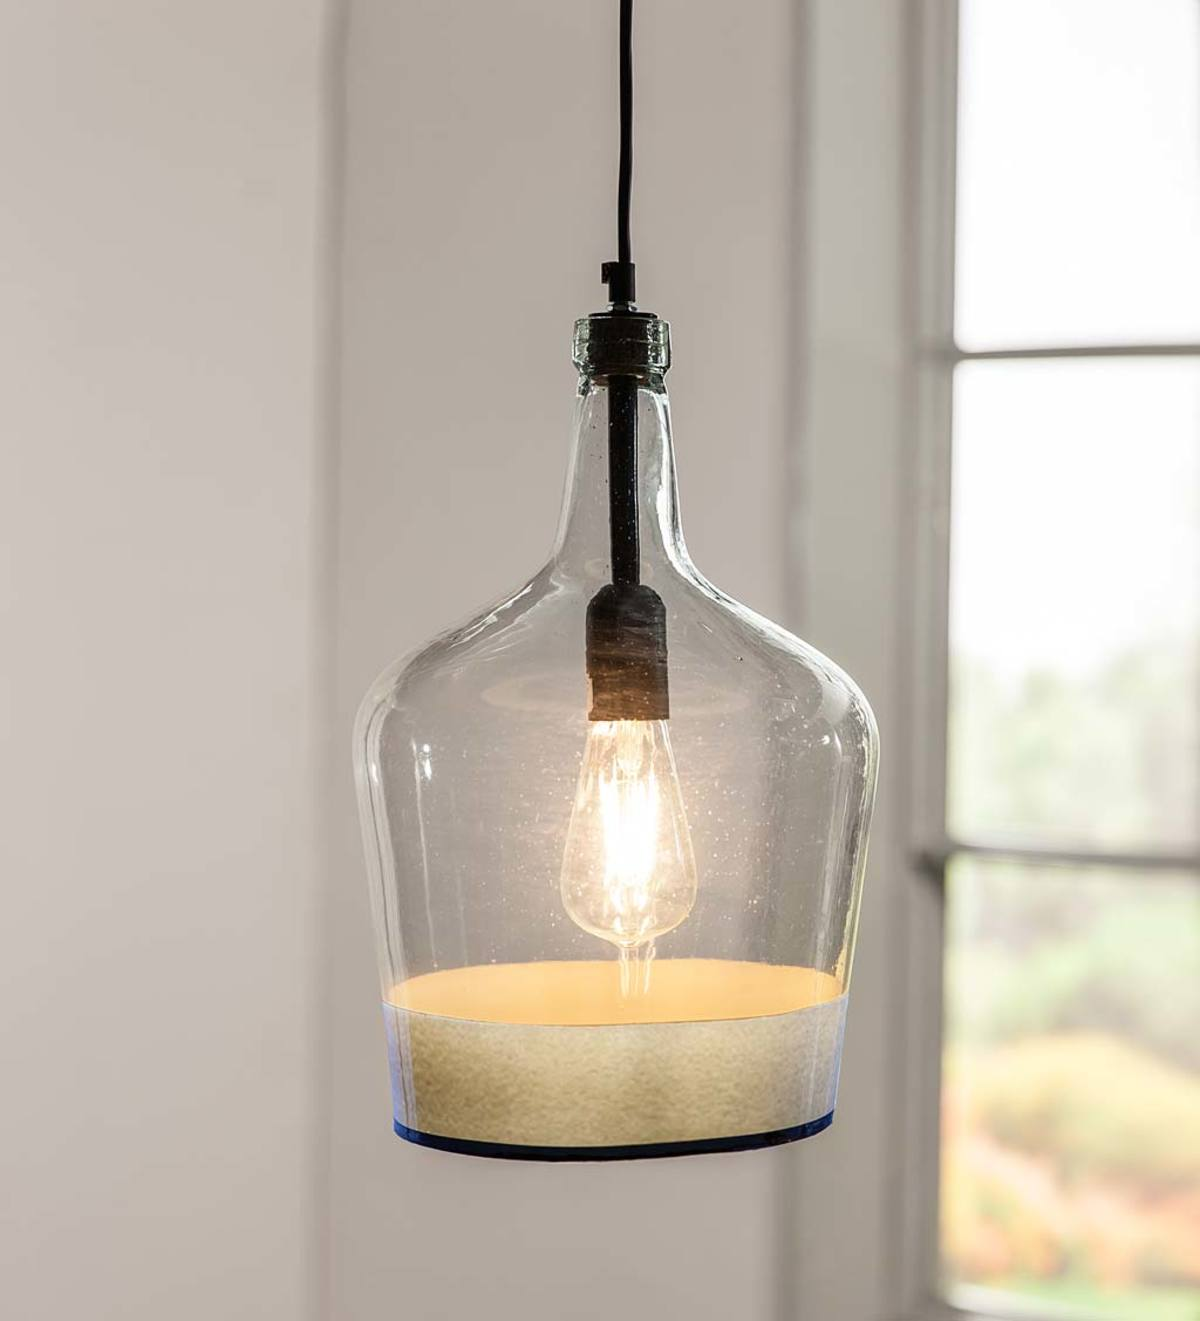 Demijohn Pendant Light - White